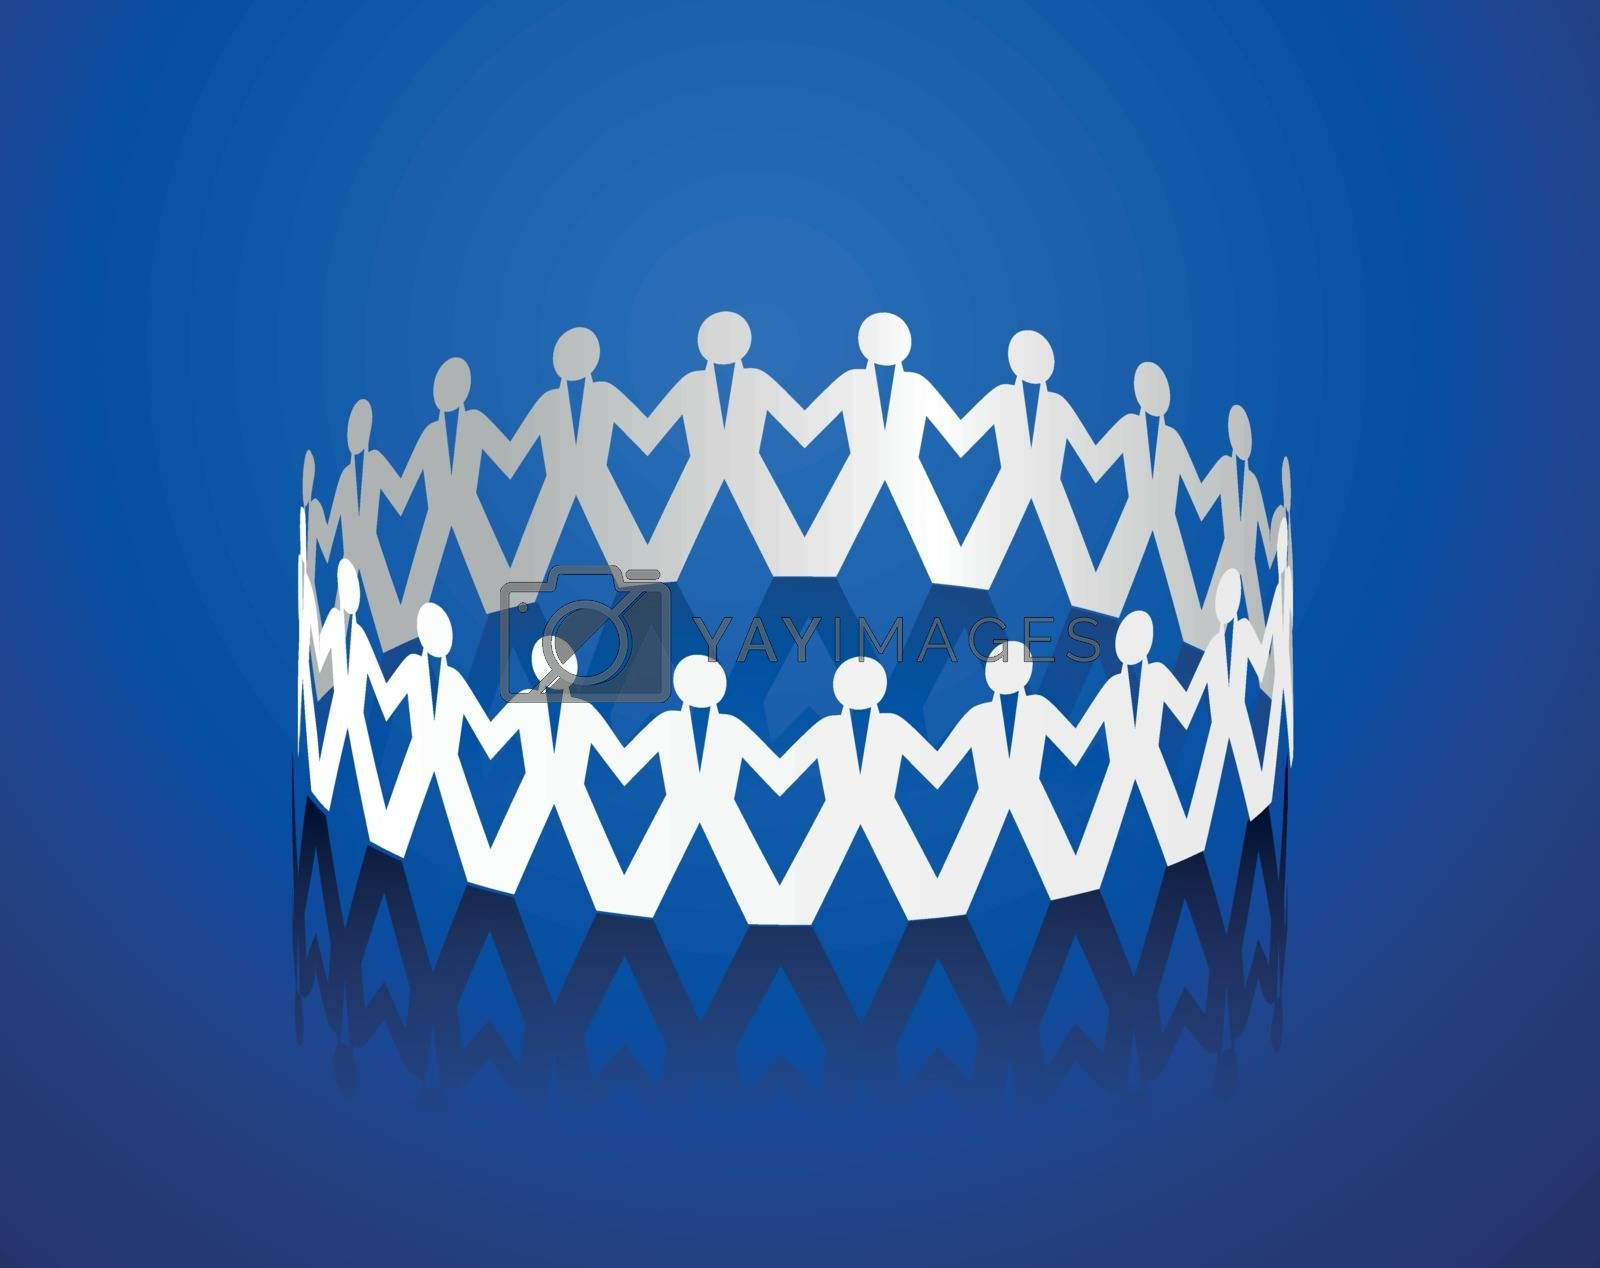 Paper men holding hands in the shape of a circle. Vector illustration